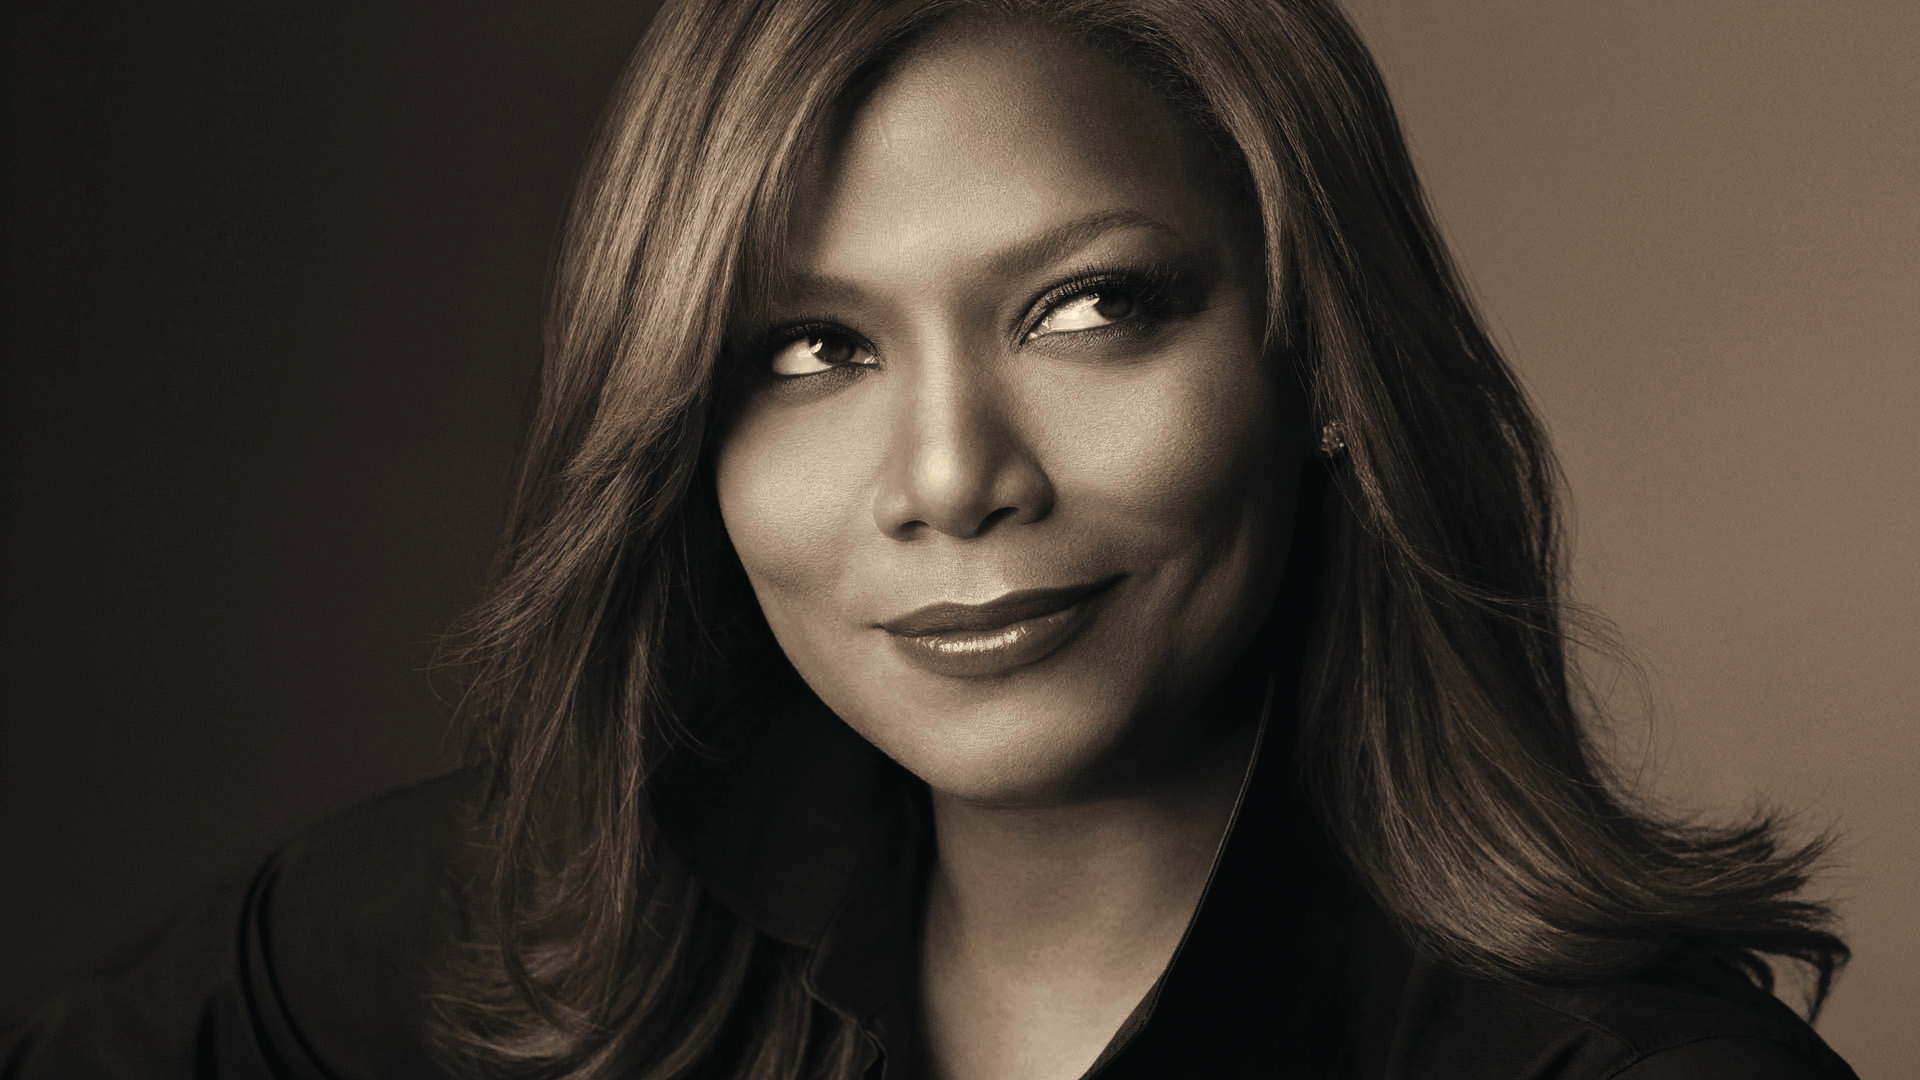 Queen Latifah Wallpapers High Quality Download Free